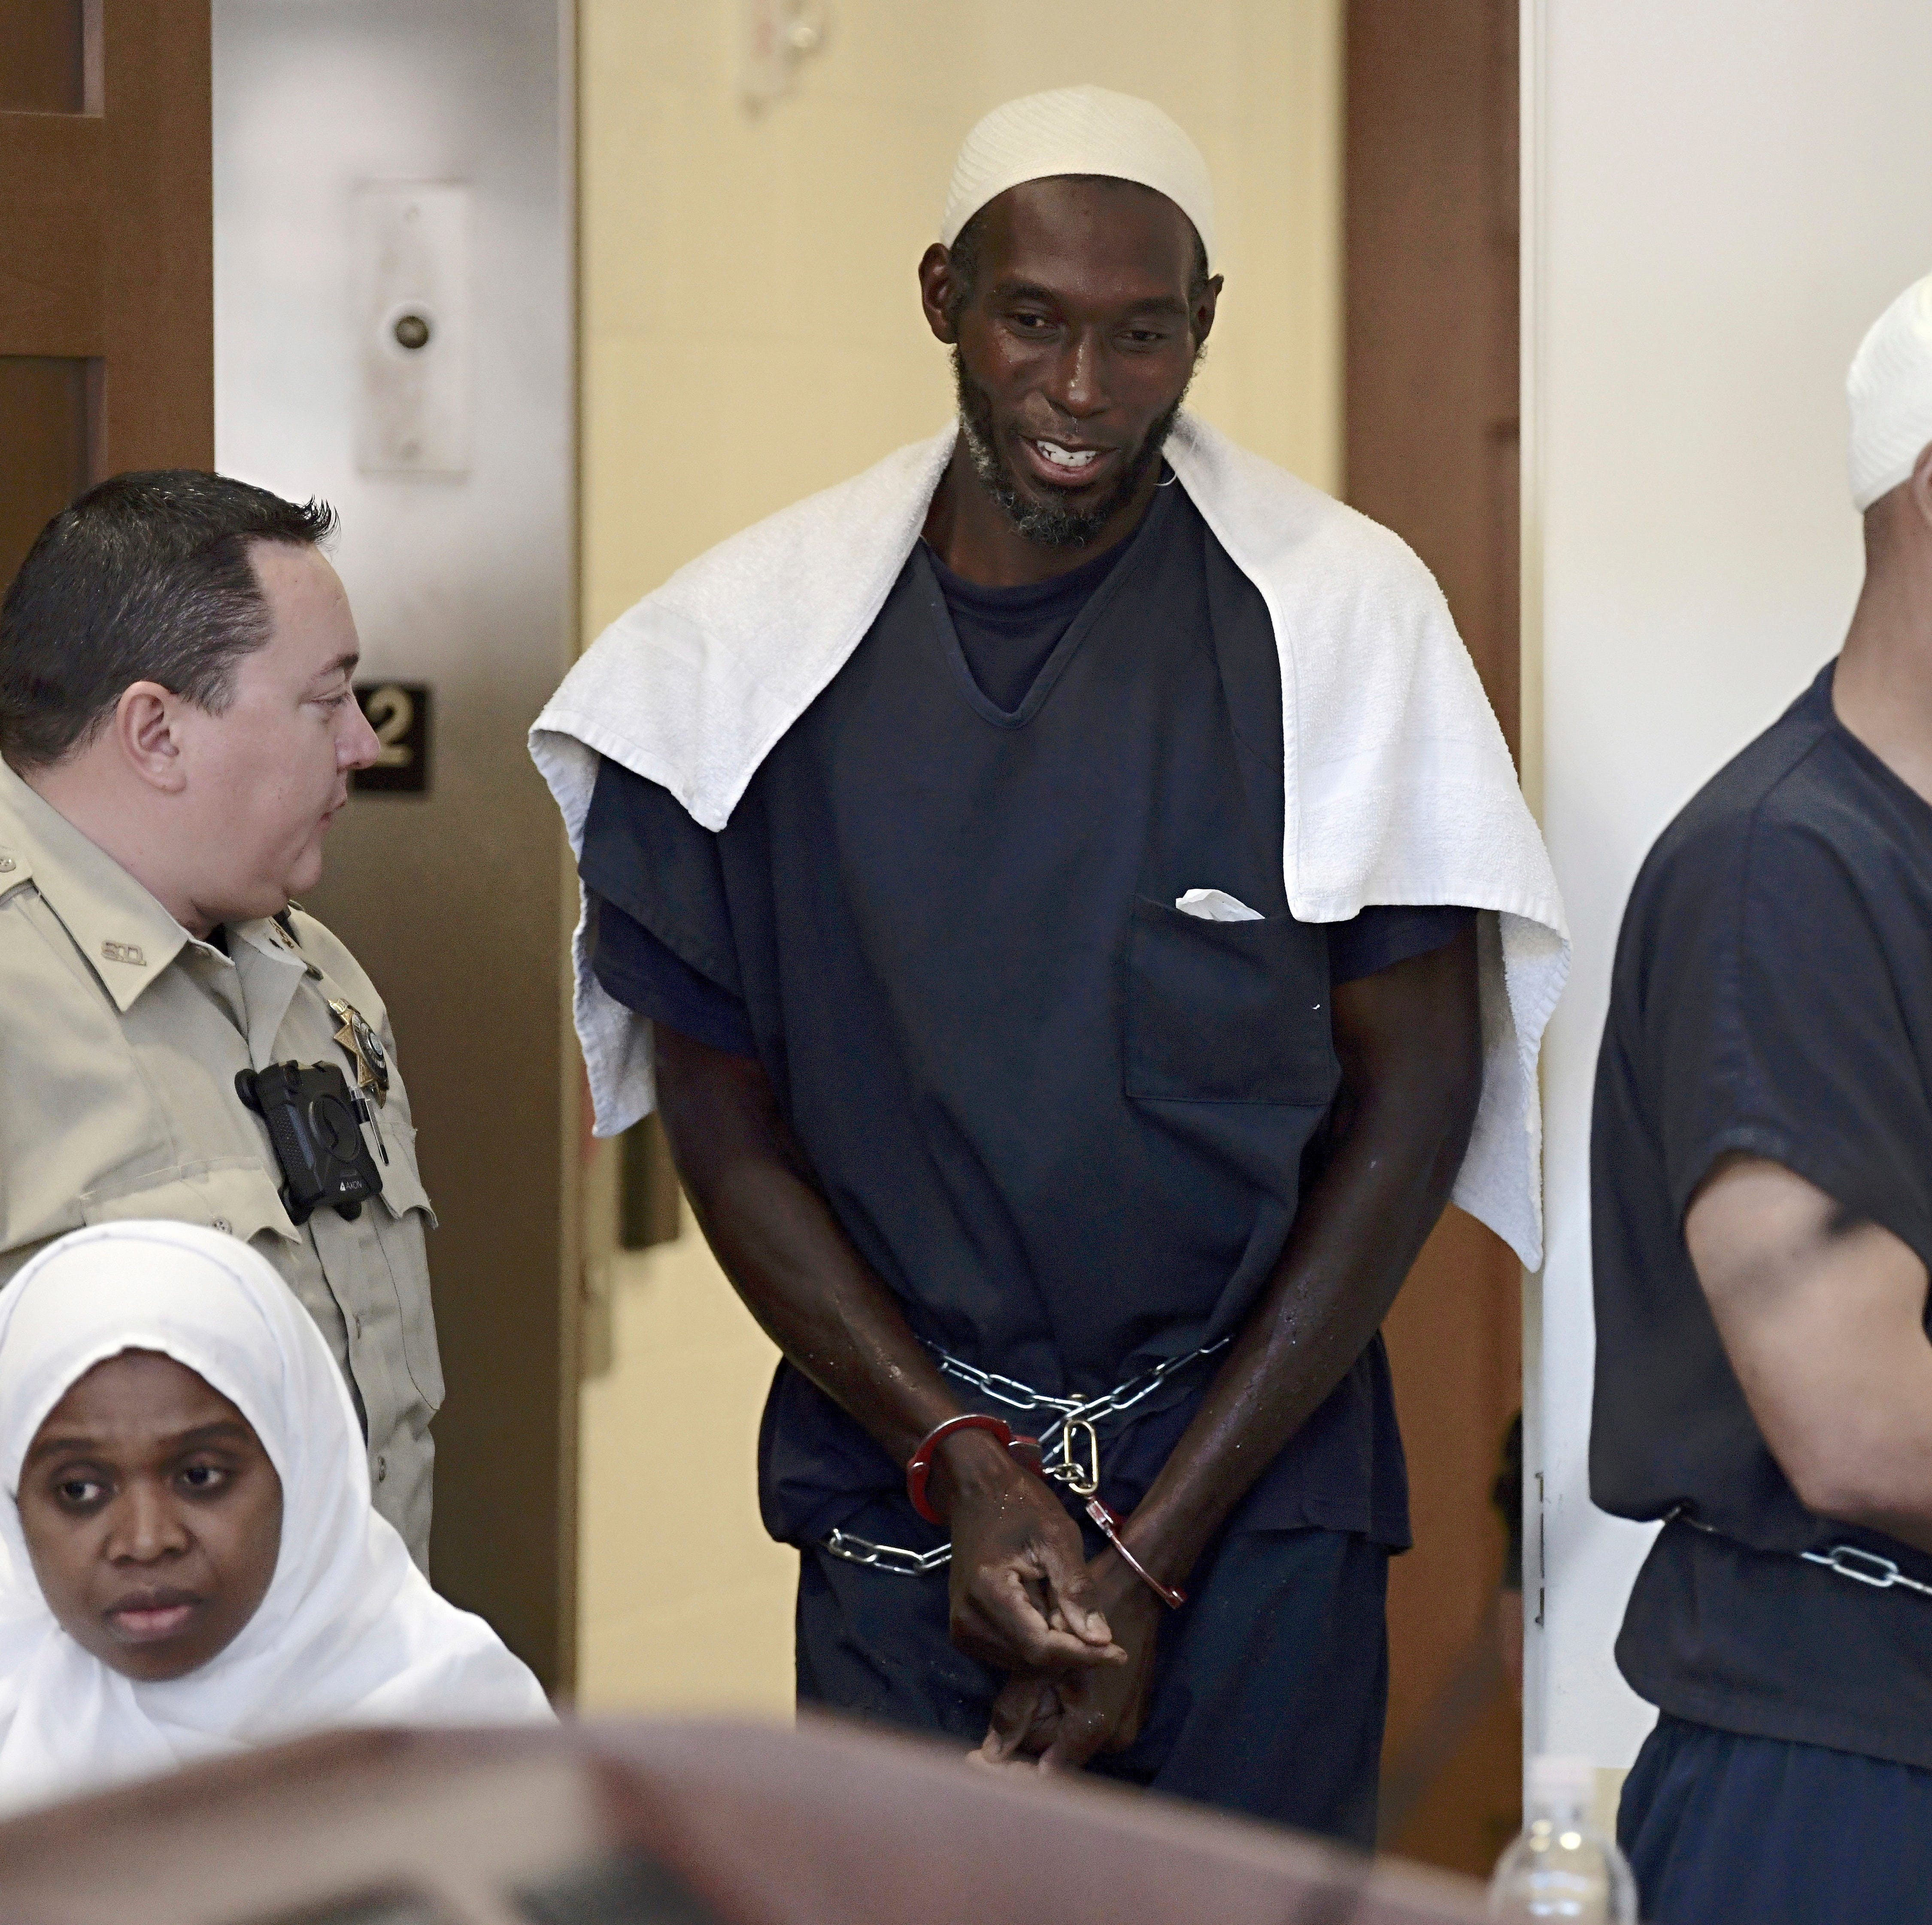 New Mexico compound: Muslim woman believed dead boy would be reincarnated as Jesus, FBI says